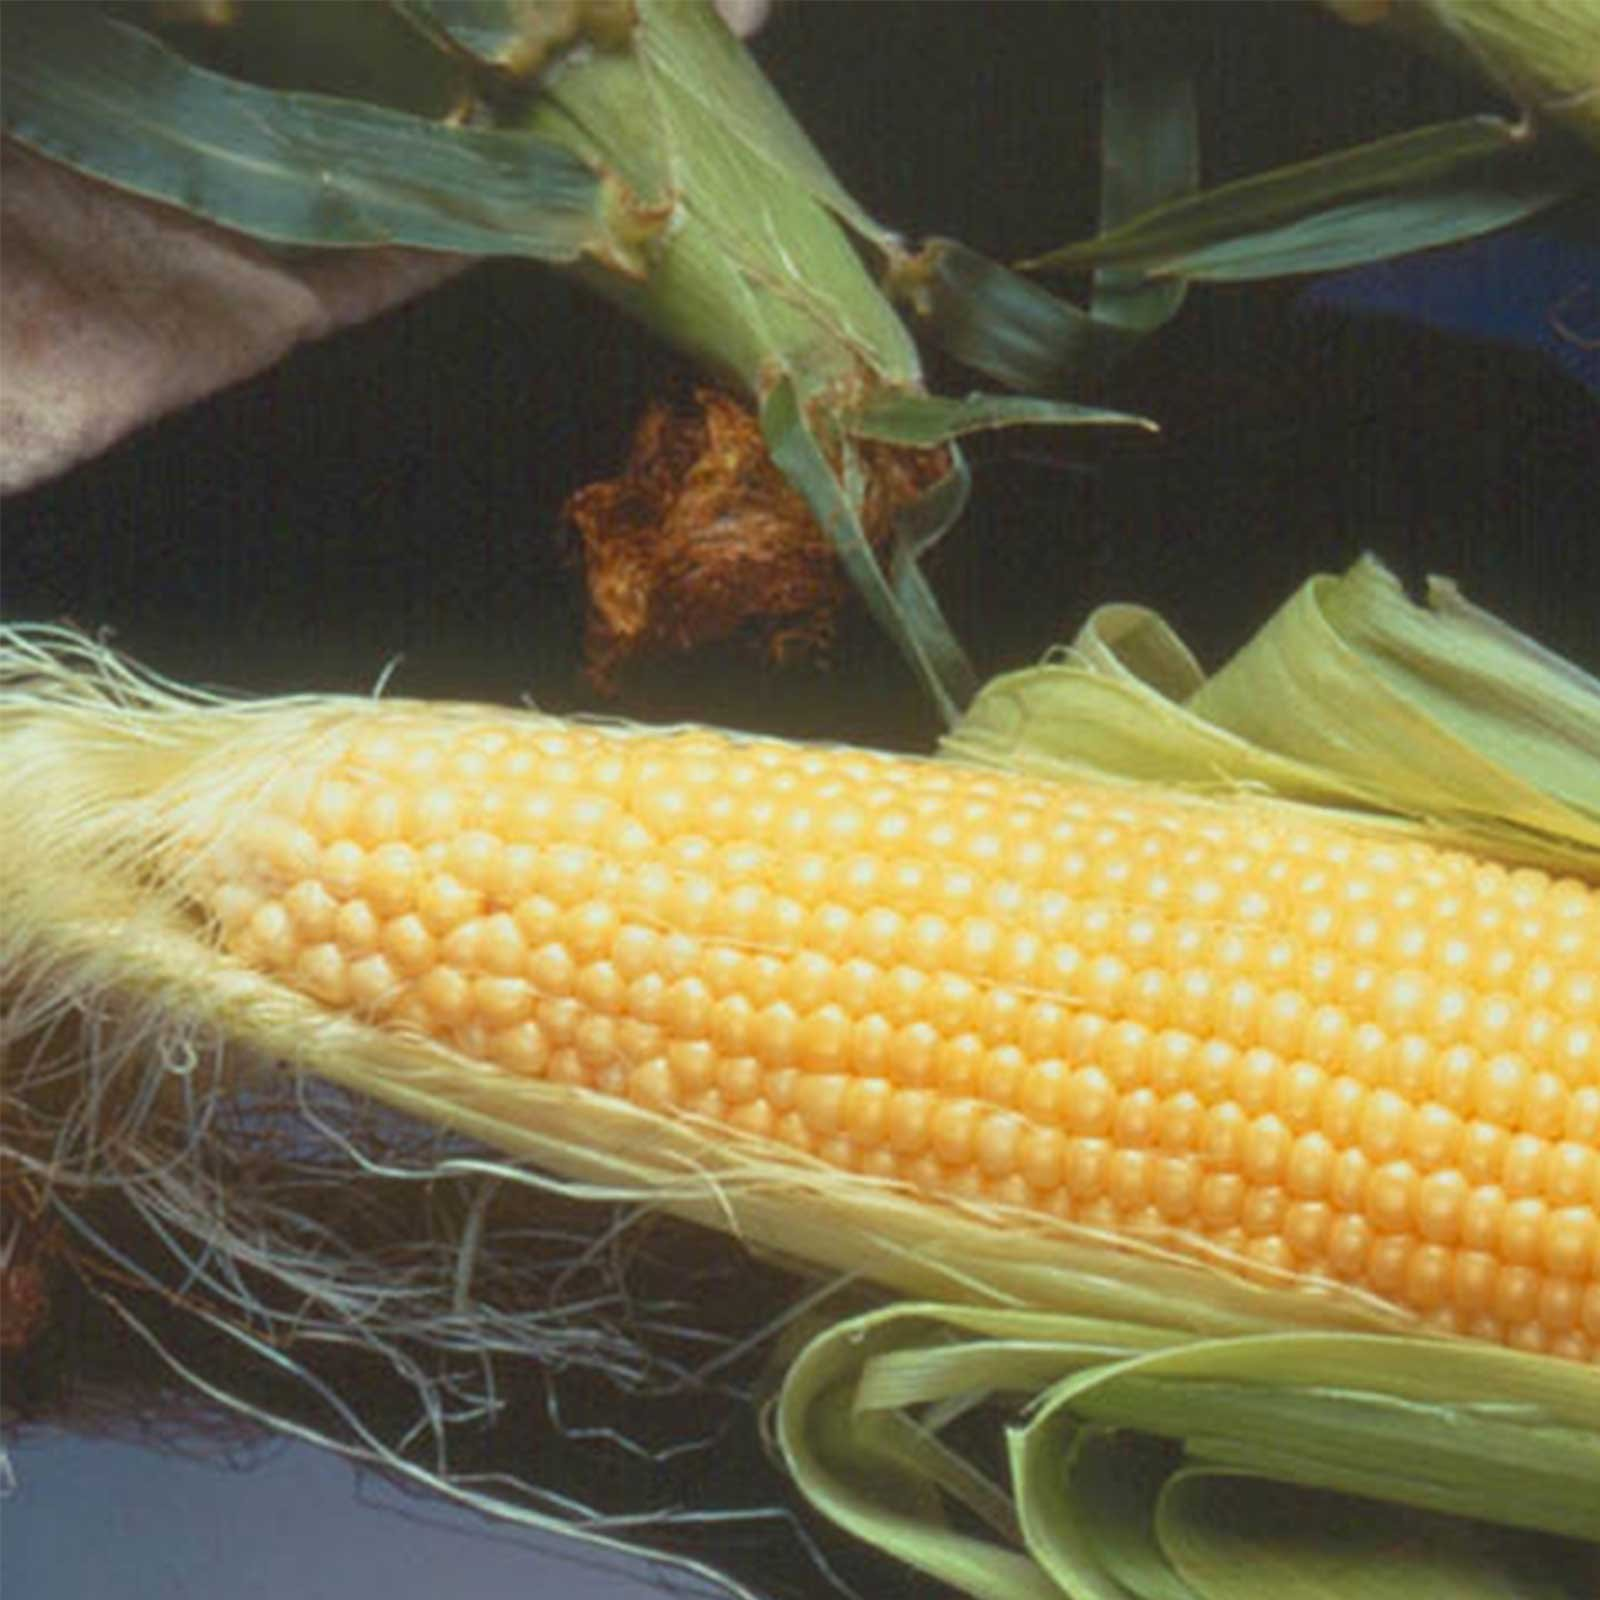 Incredible Hybrid Corn Garden Seeds (Treated) - 5 Lb - Non-GMO, R/M, Vegetable Gardening Seeds - Yellow Corn by Mountain Valley Seed Company (Image #1)